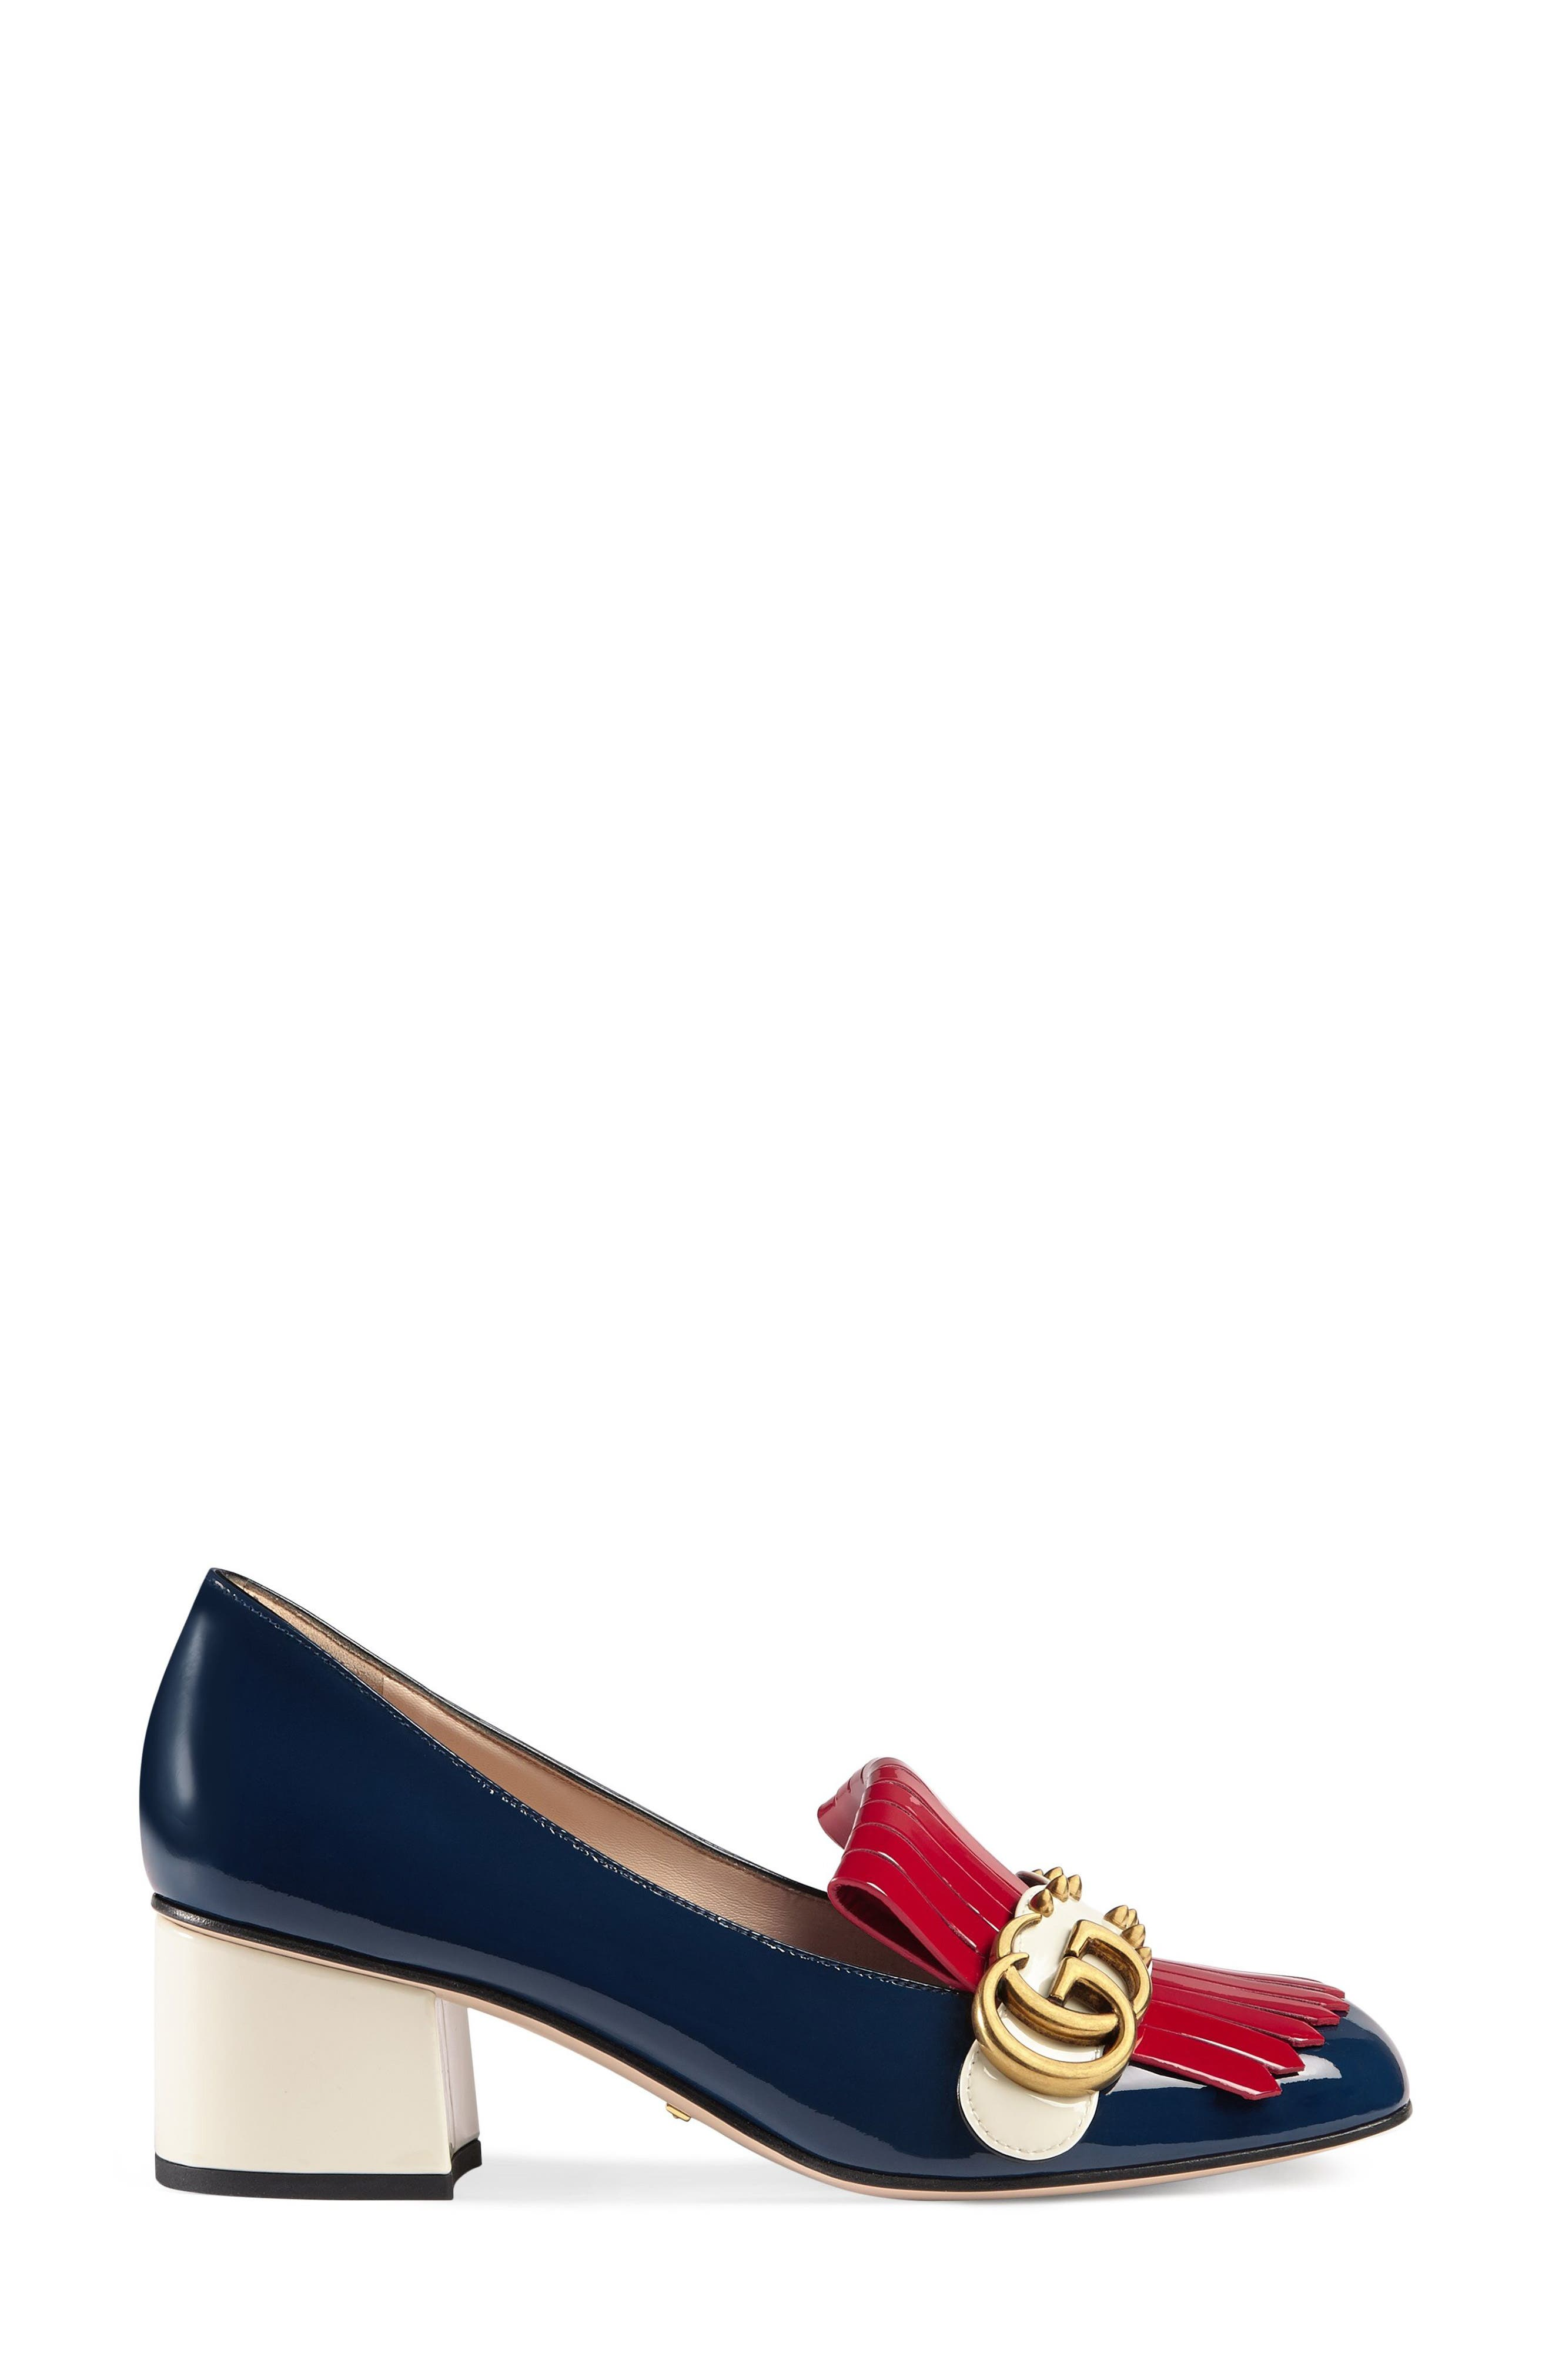 Marmont Pump,                         Main,                         color, Navy/ Red/ White